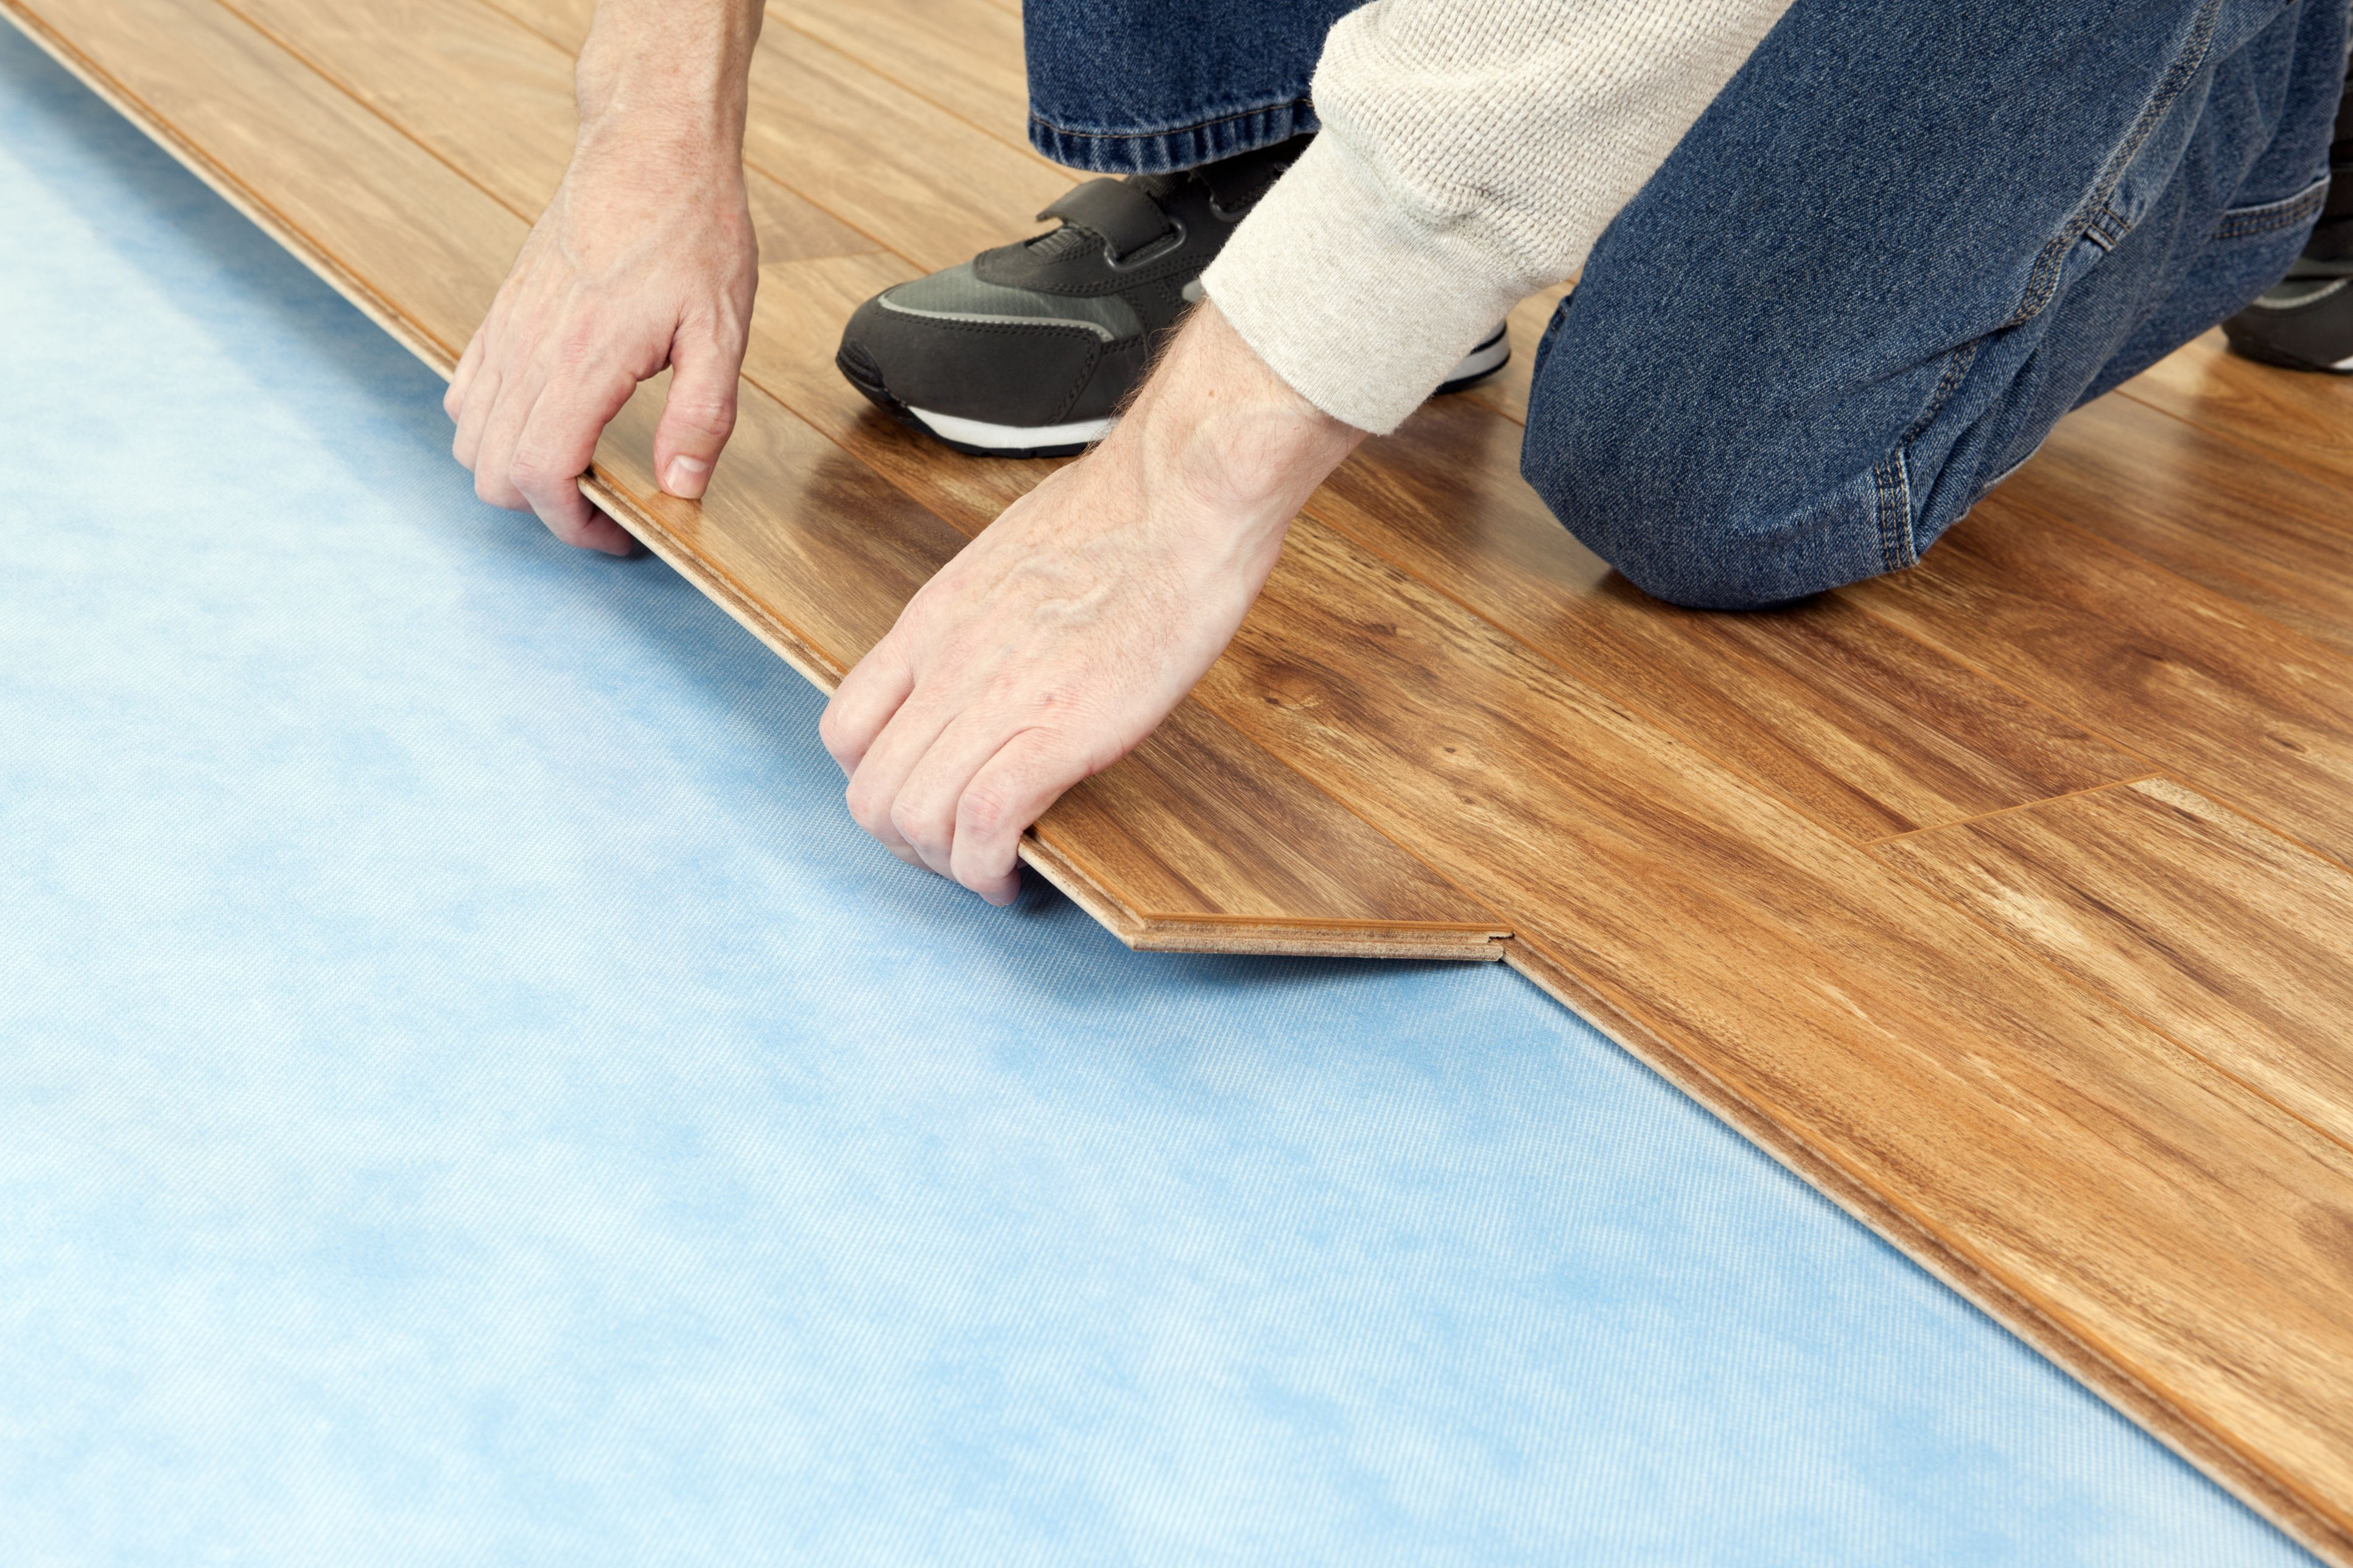 Cork Underlayment | What Type of Underlayment for Hardwood Floor | 6mm Cork Underlayment